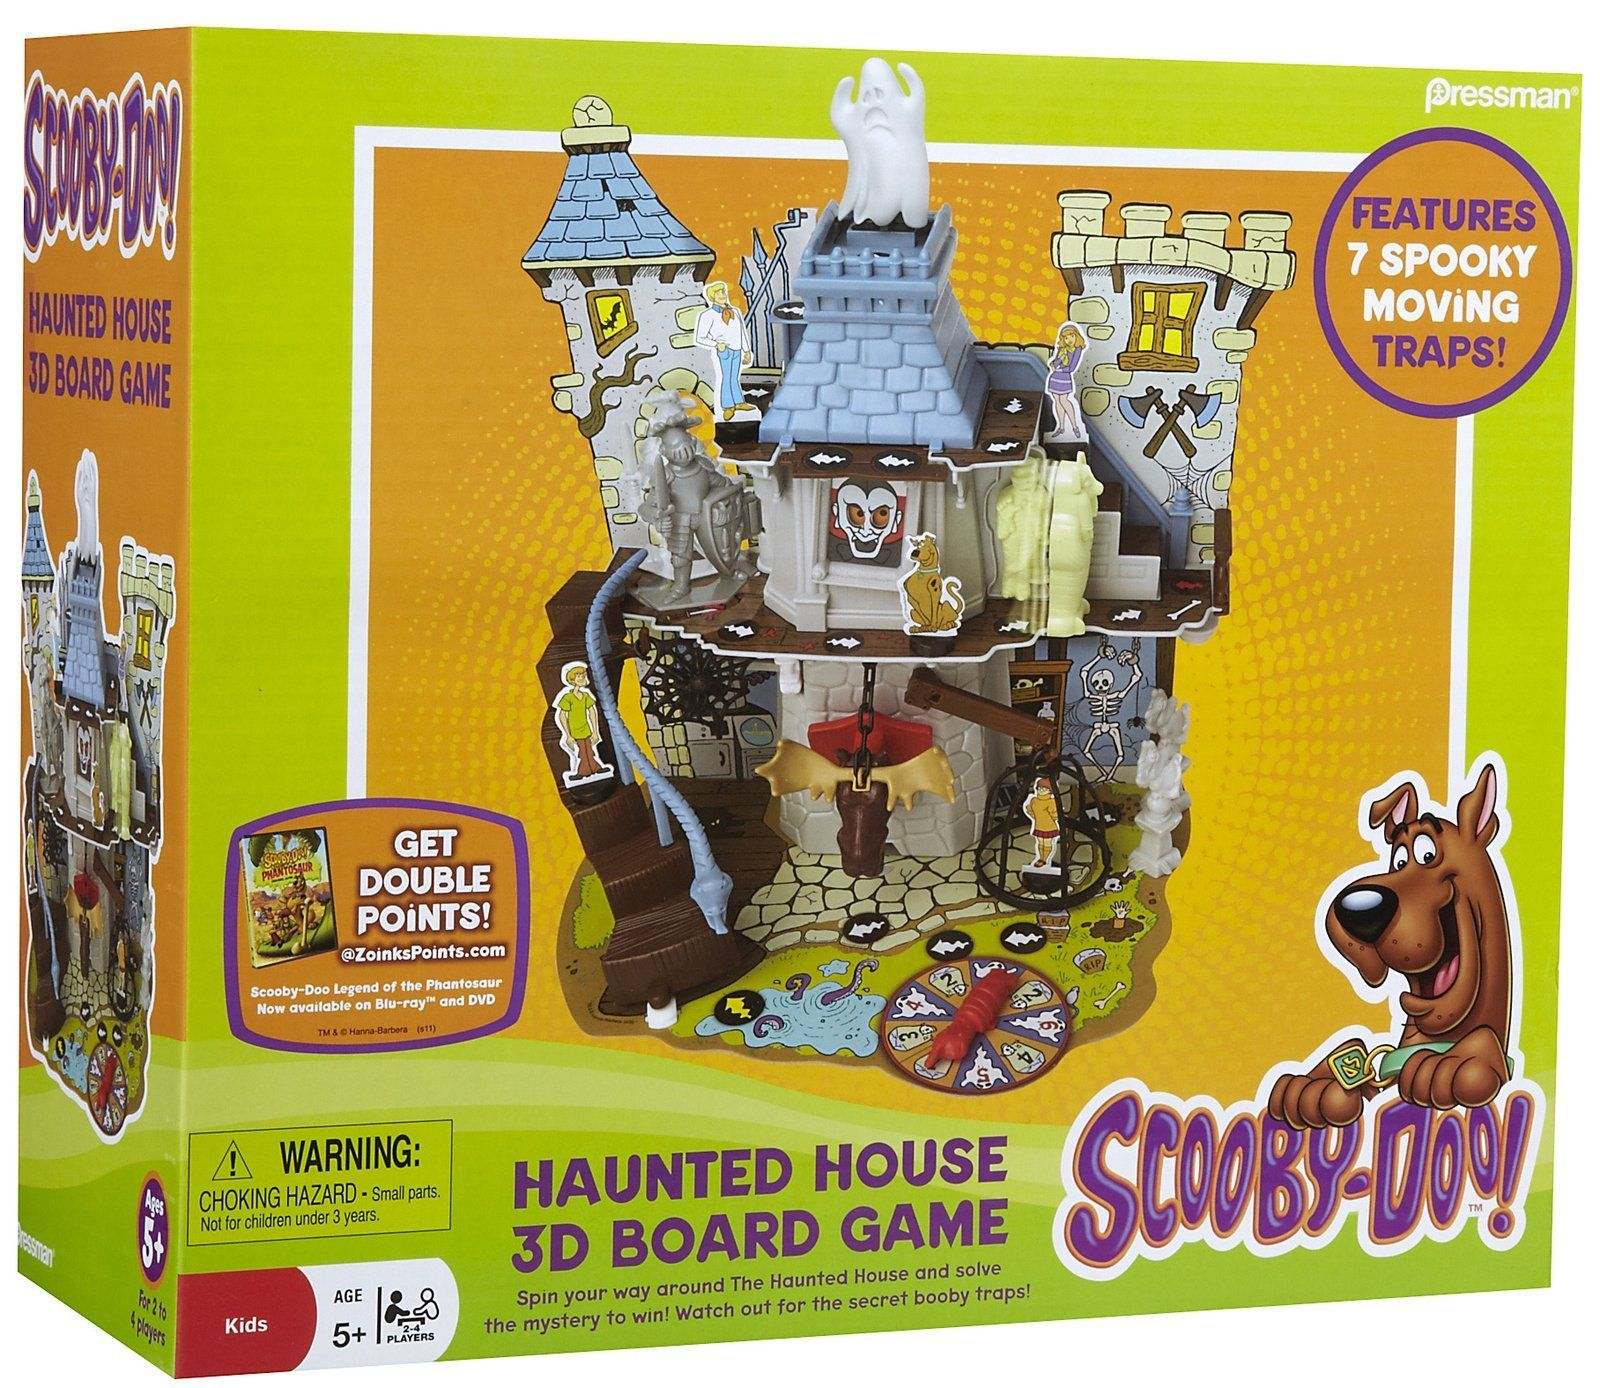 Scooby-doo! Haunted House 3D Board Game